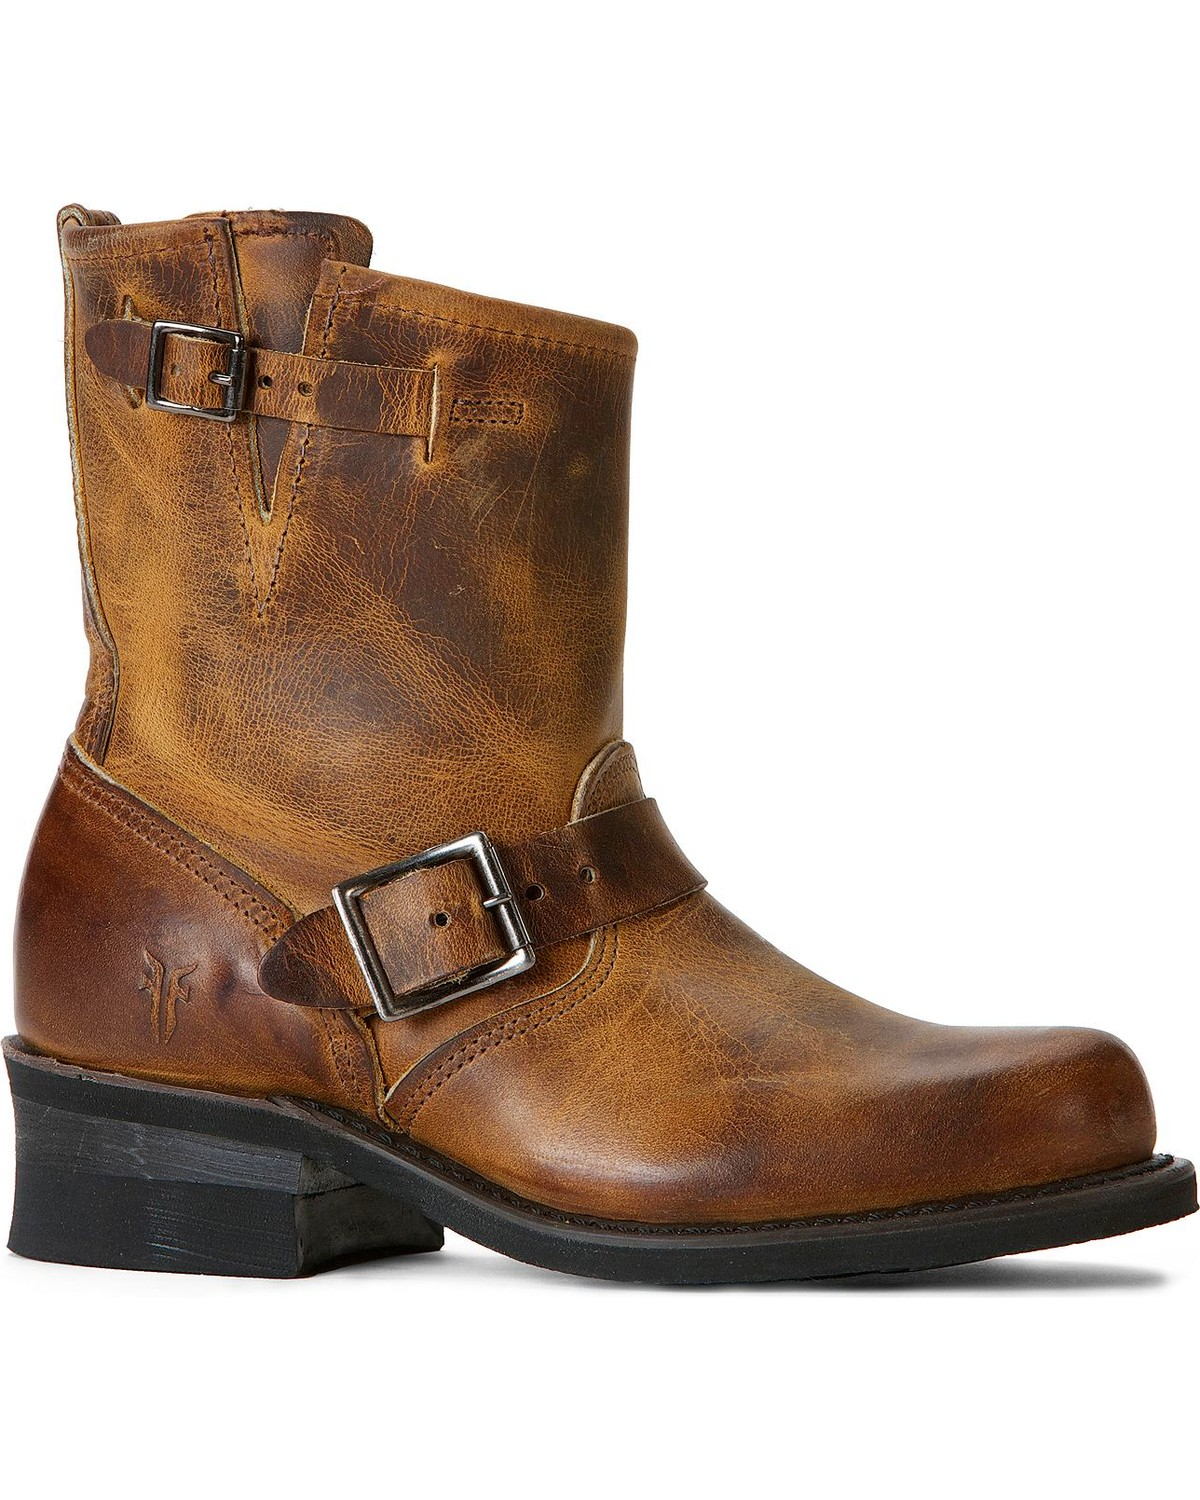 Where to buy dress shoes near me